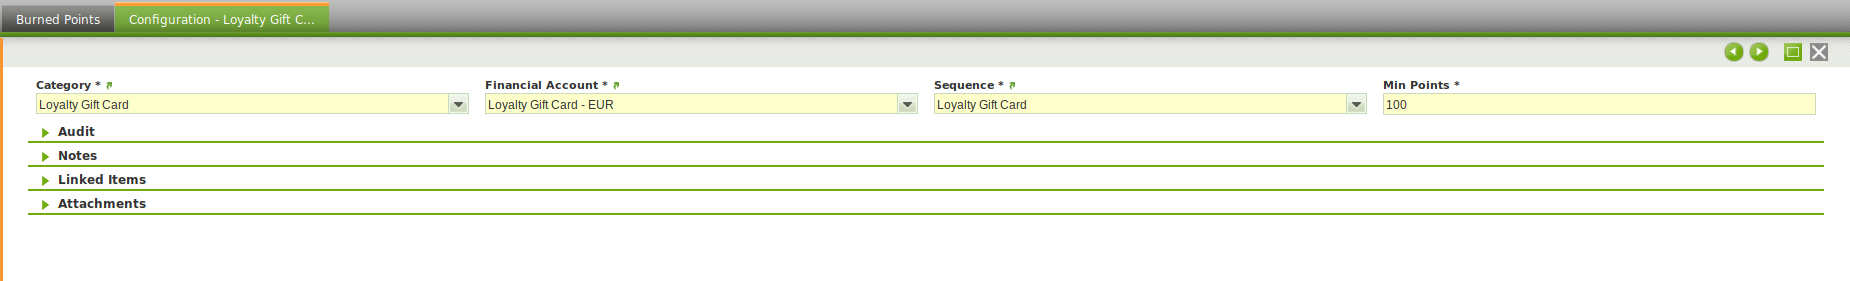 Gift Certificate BURN Rule Configuration.png